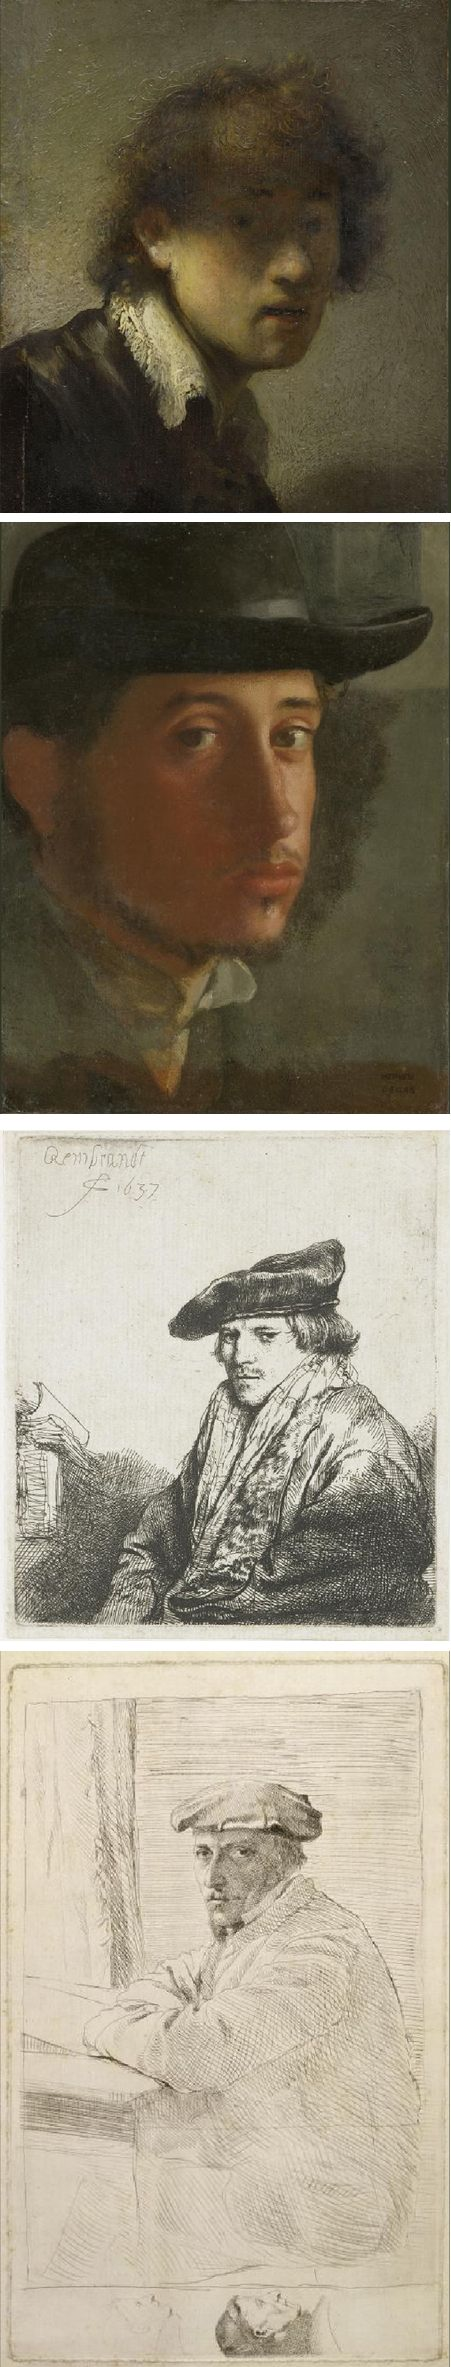 For the first time: Rembrandt & Degas